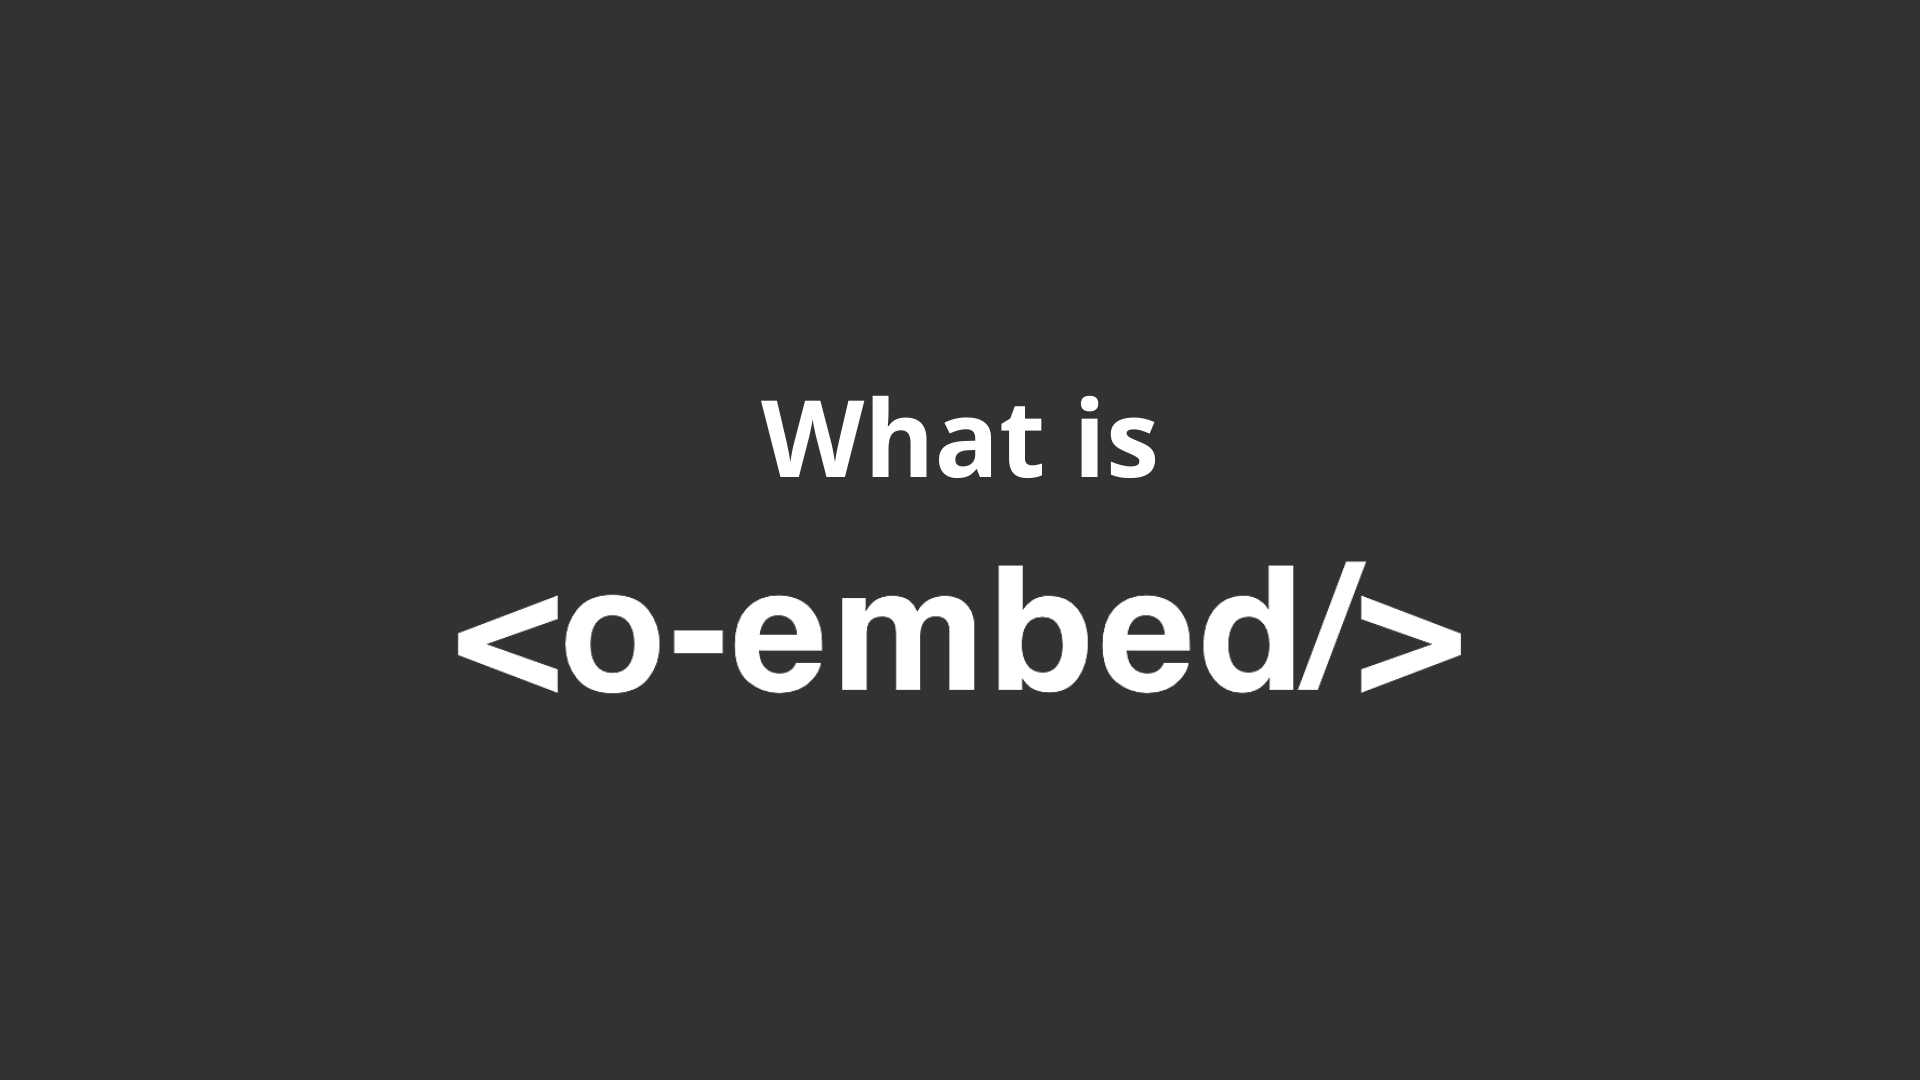 oEmbed